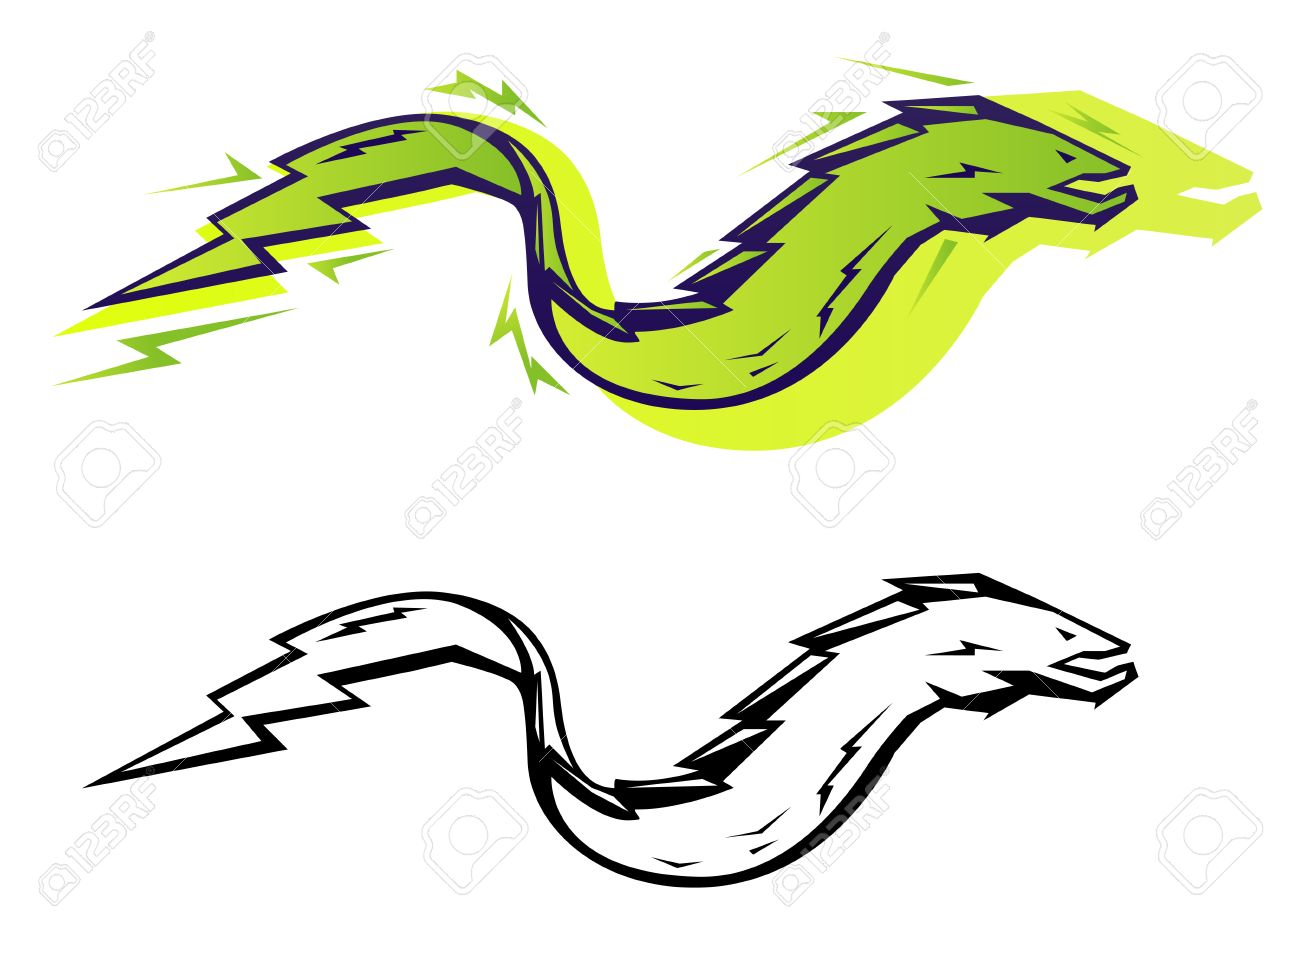 eel images u0026 stock pictures royalty free eel photos and stock